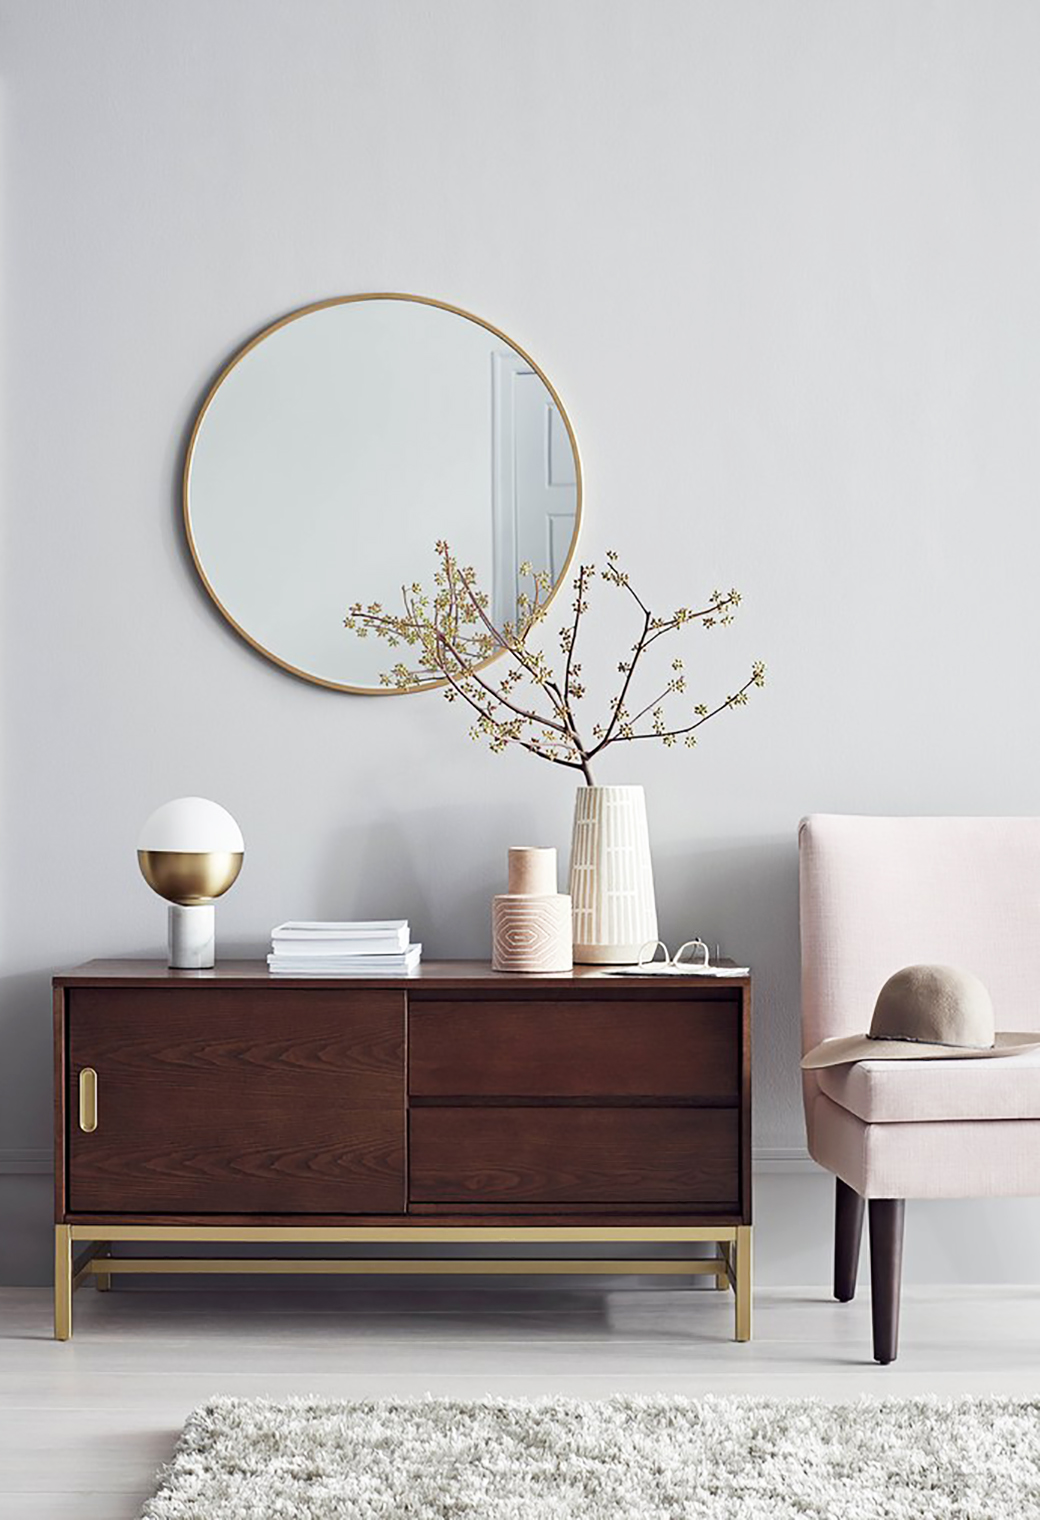 Sideboard with brass accent, ceramic vases, lamps, brass mirror and the Plymouth chair in blush pink.